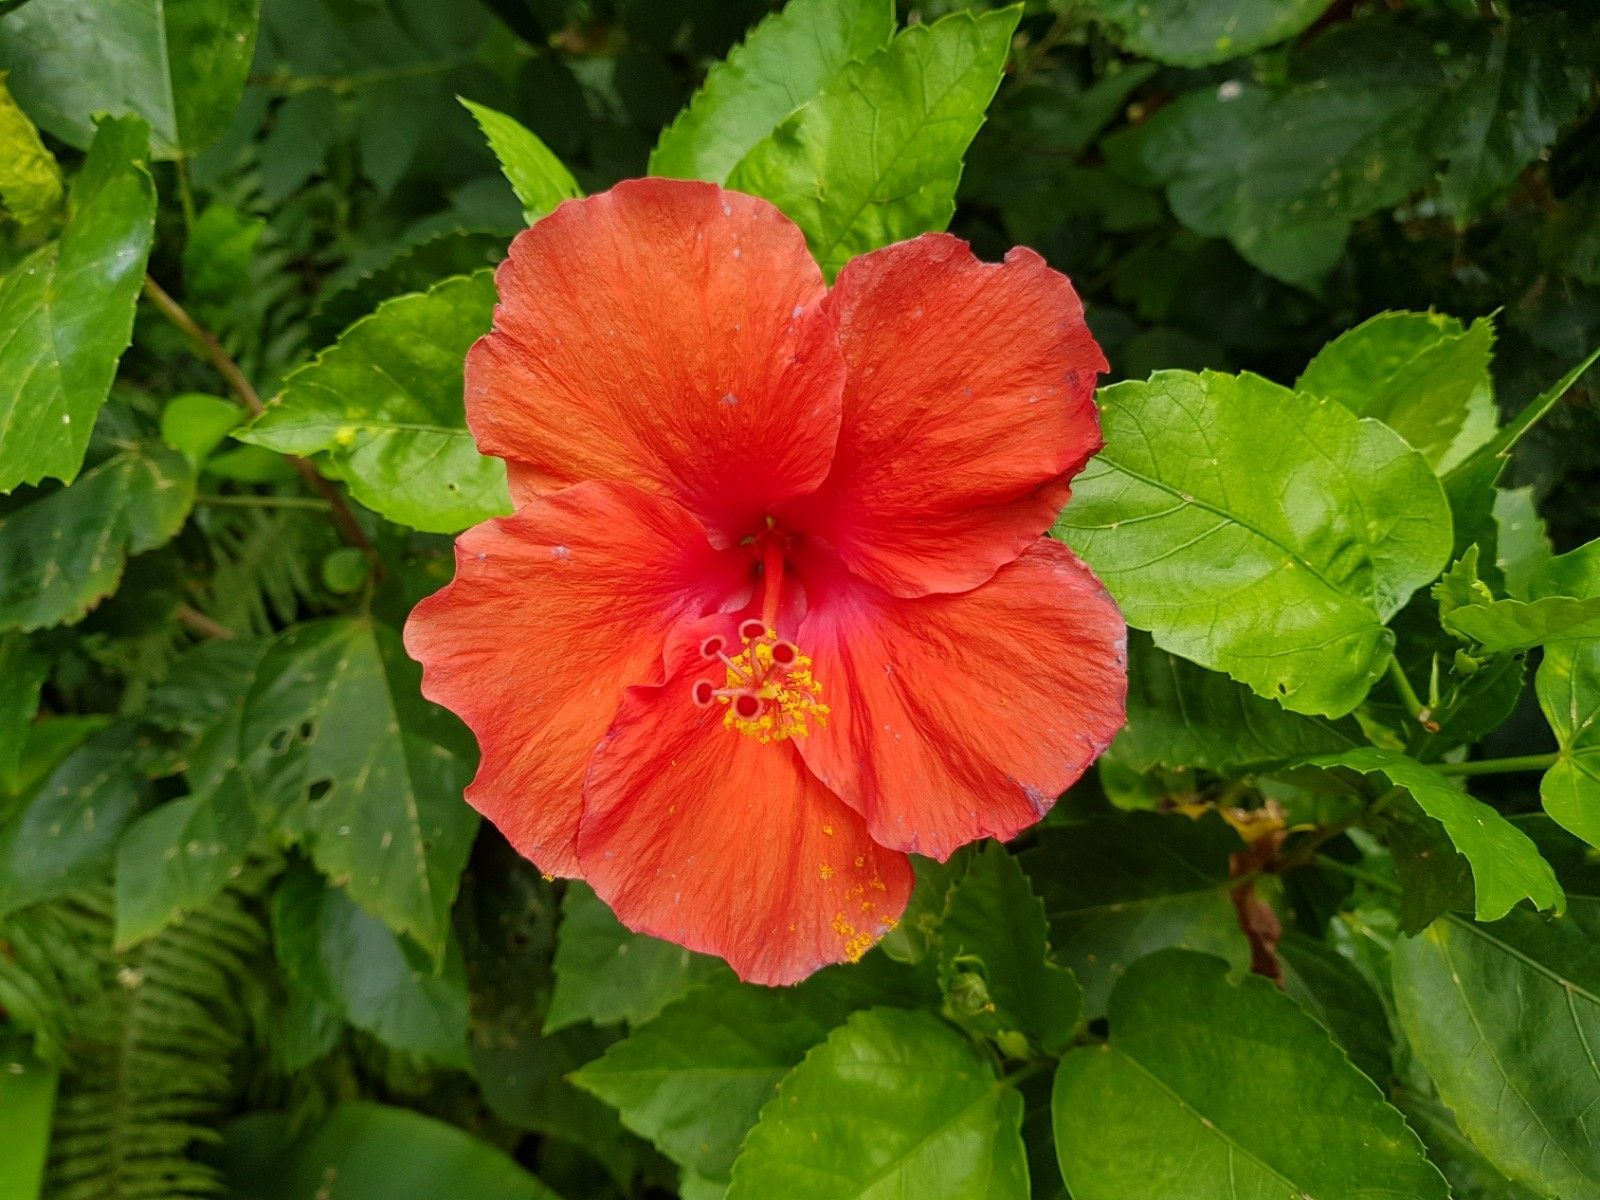 Famous Tropical Hibiscus Flower A Flowering Woody Shrub That Has Several Species And Cultured As Ornamenta Nature Photography Flowers Hibiscus Flowers Flowers